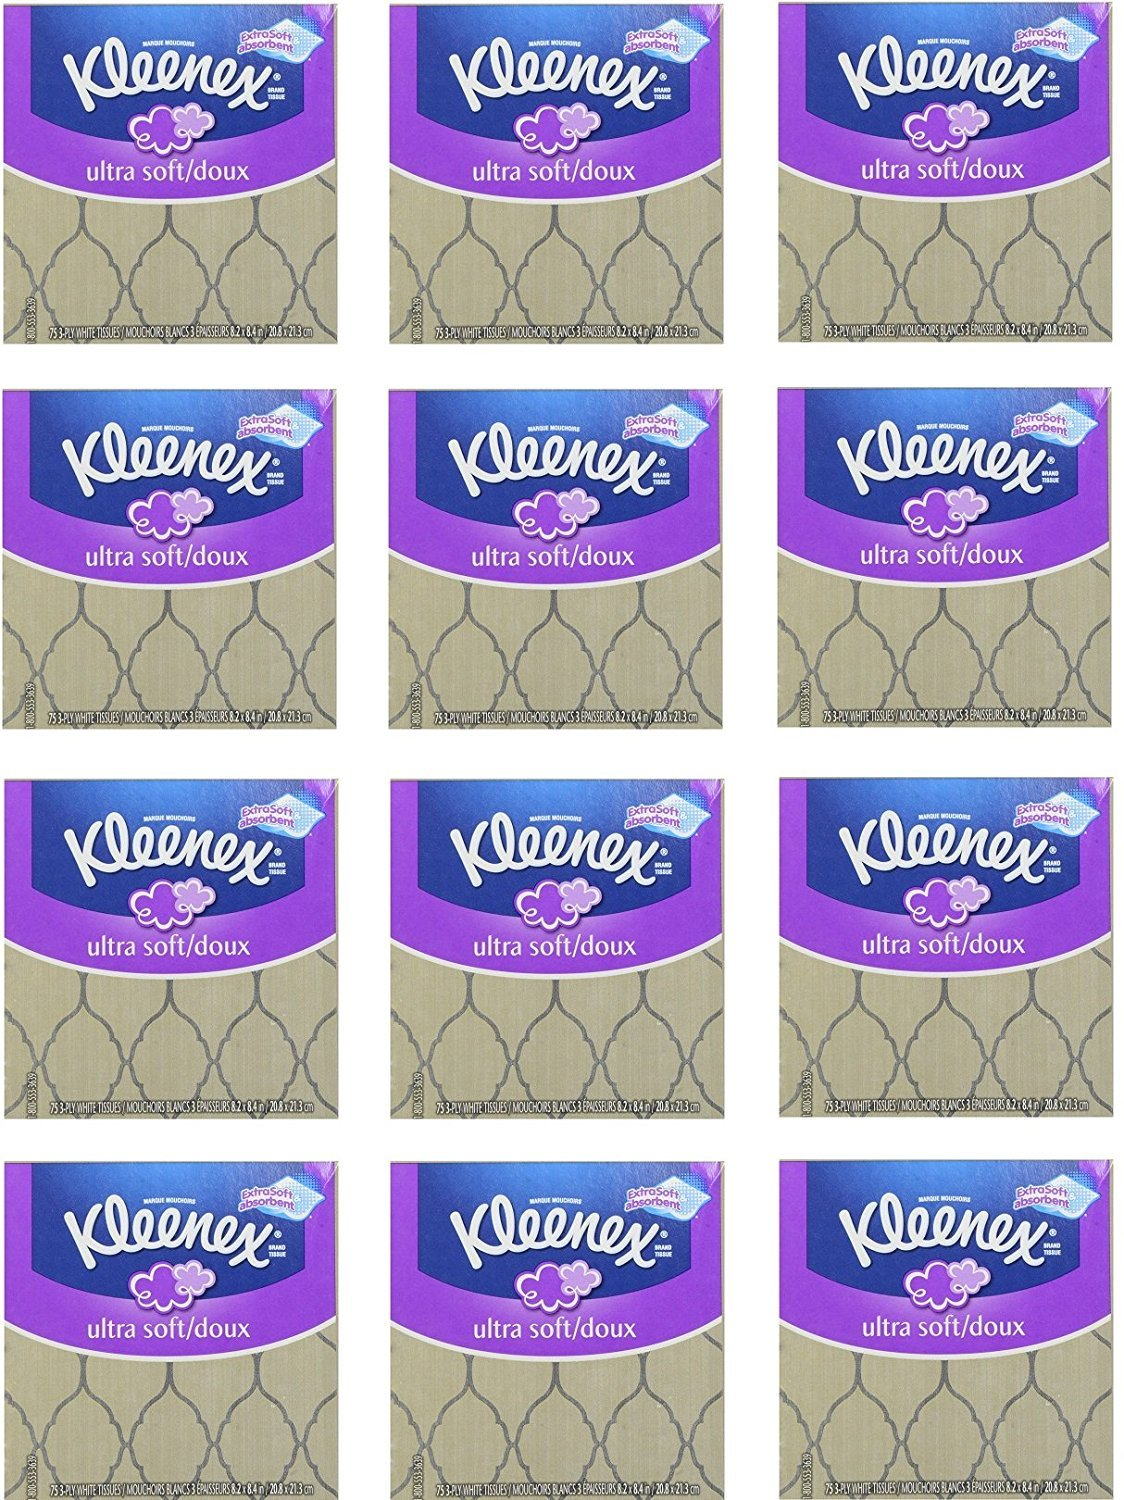 Kleenex Ultra Soft Facial Tissues, Thick and Absorbent & Strong 75, 3-PLY White Facial Tissues, - 12 Cubes Bundle Pack – 900 Total Tissues. Variety of Assorted Colors and Designs.